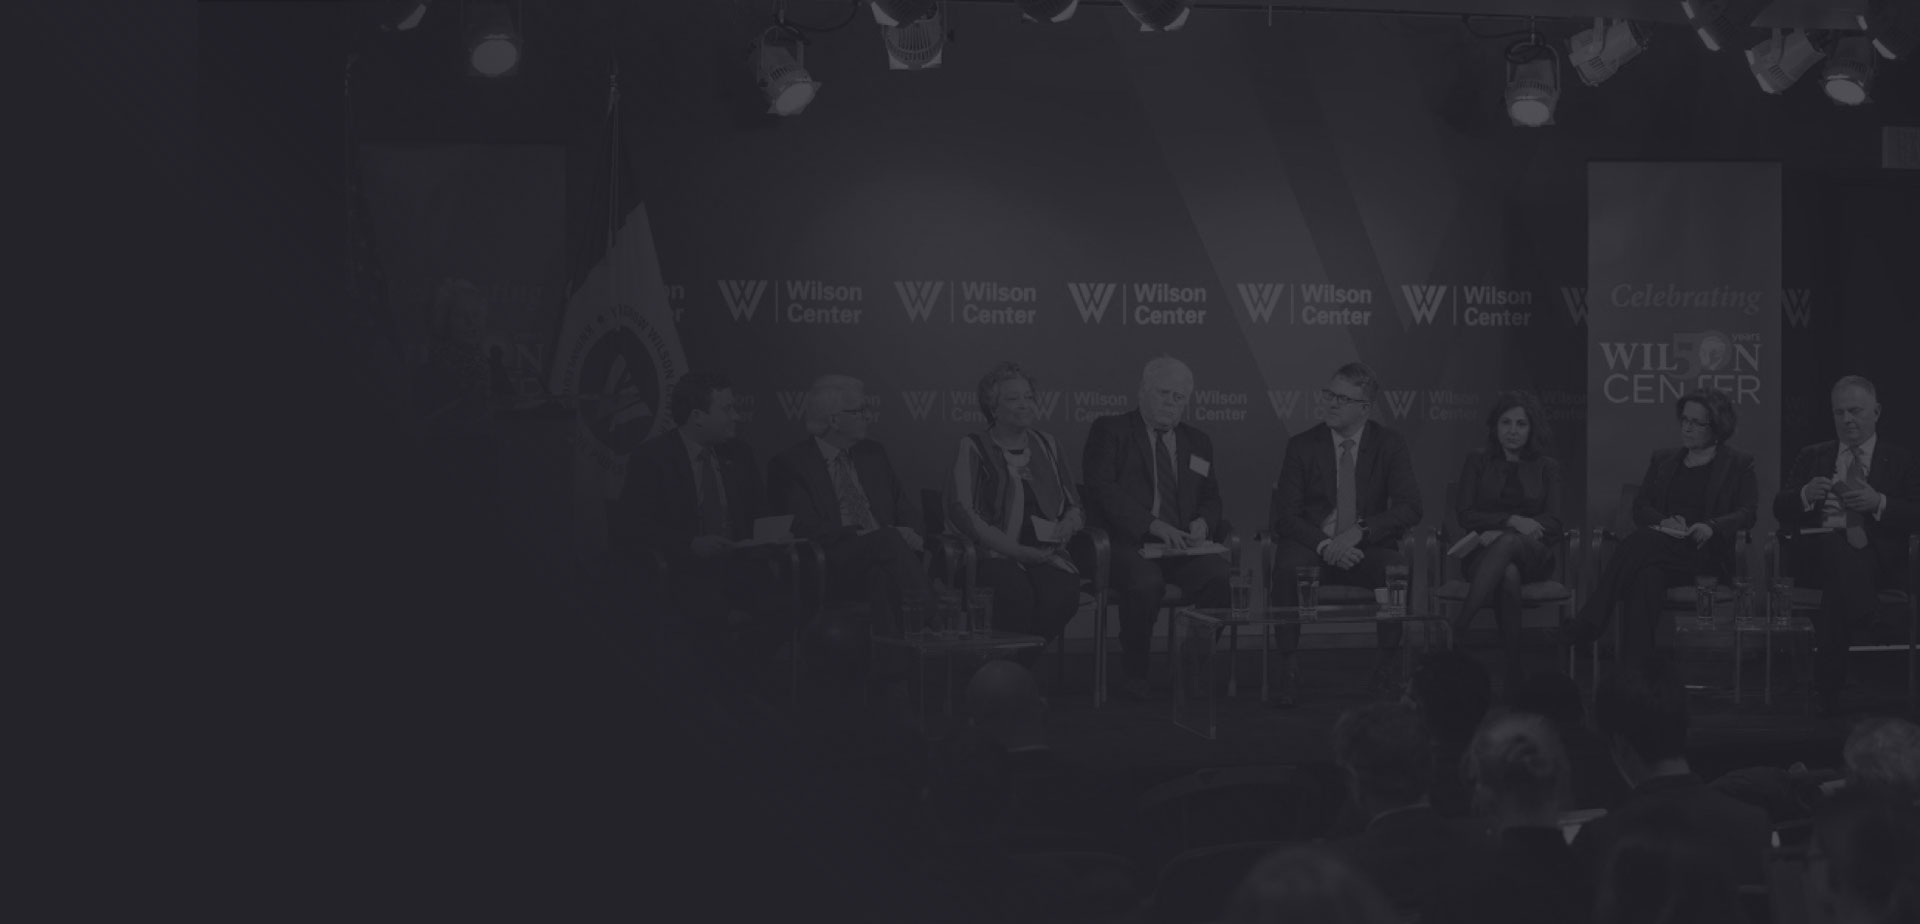 Speakers having a public discourse on stage during an event